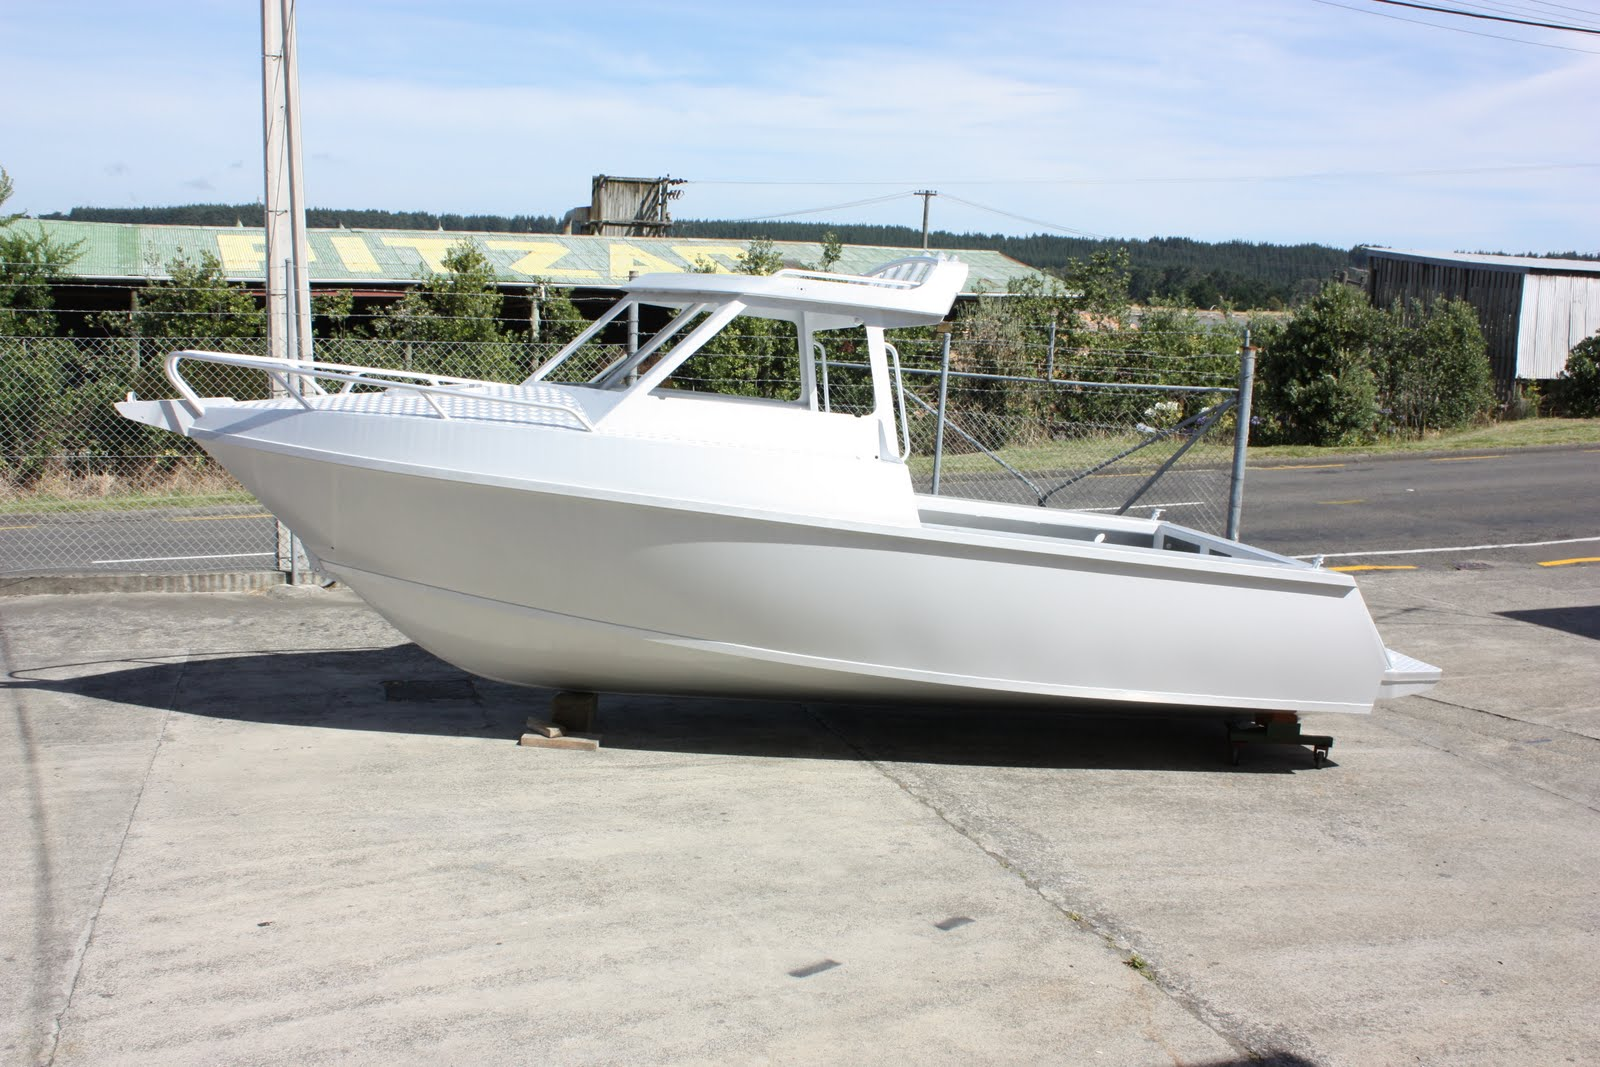 AMF Boats - Alloy Boat Builders: AMF Boats First Time at